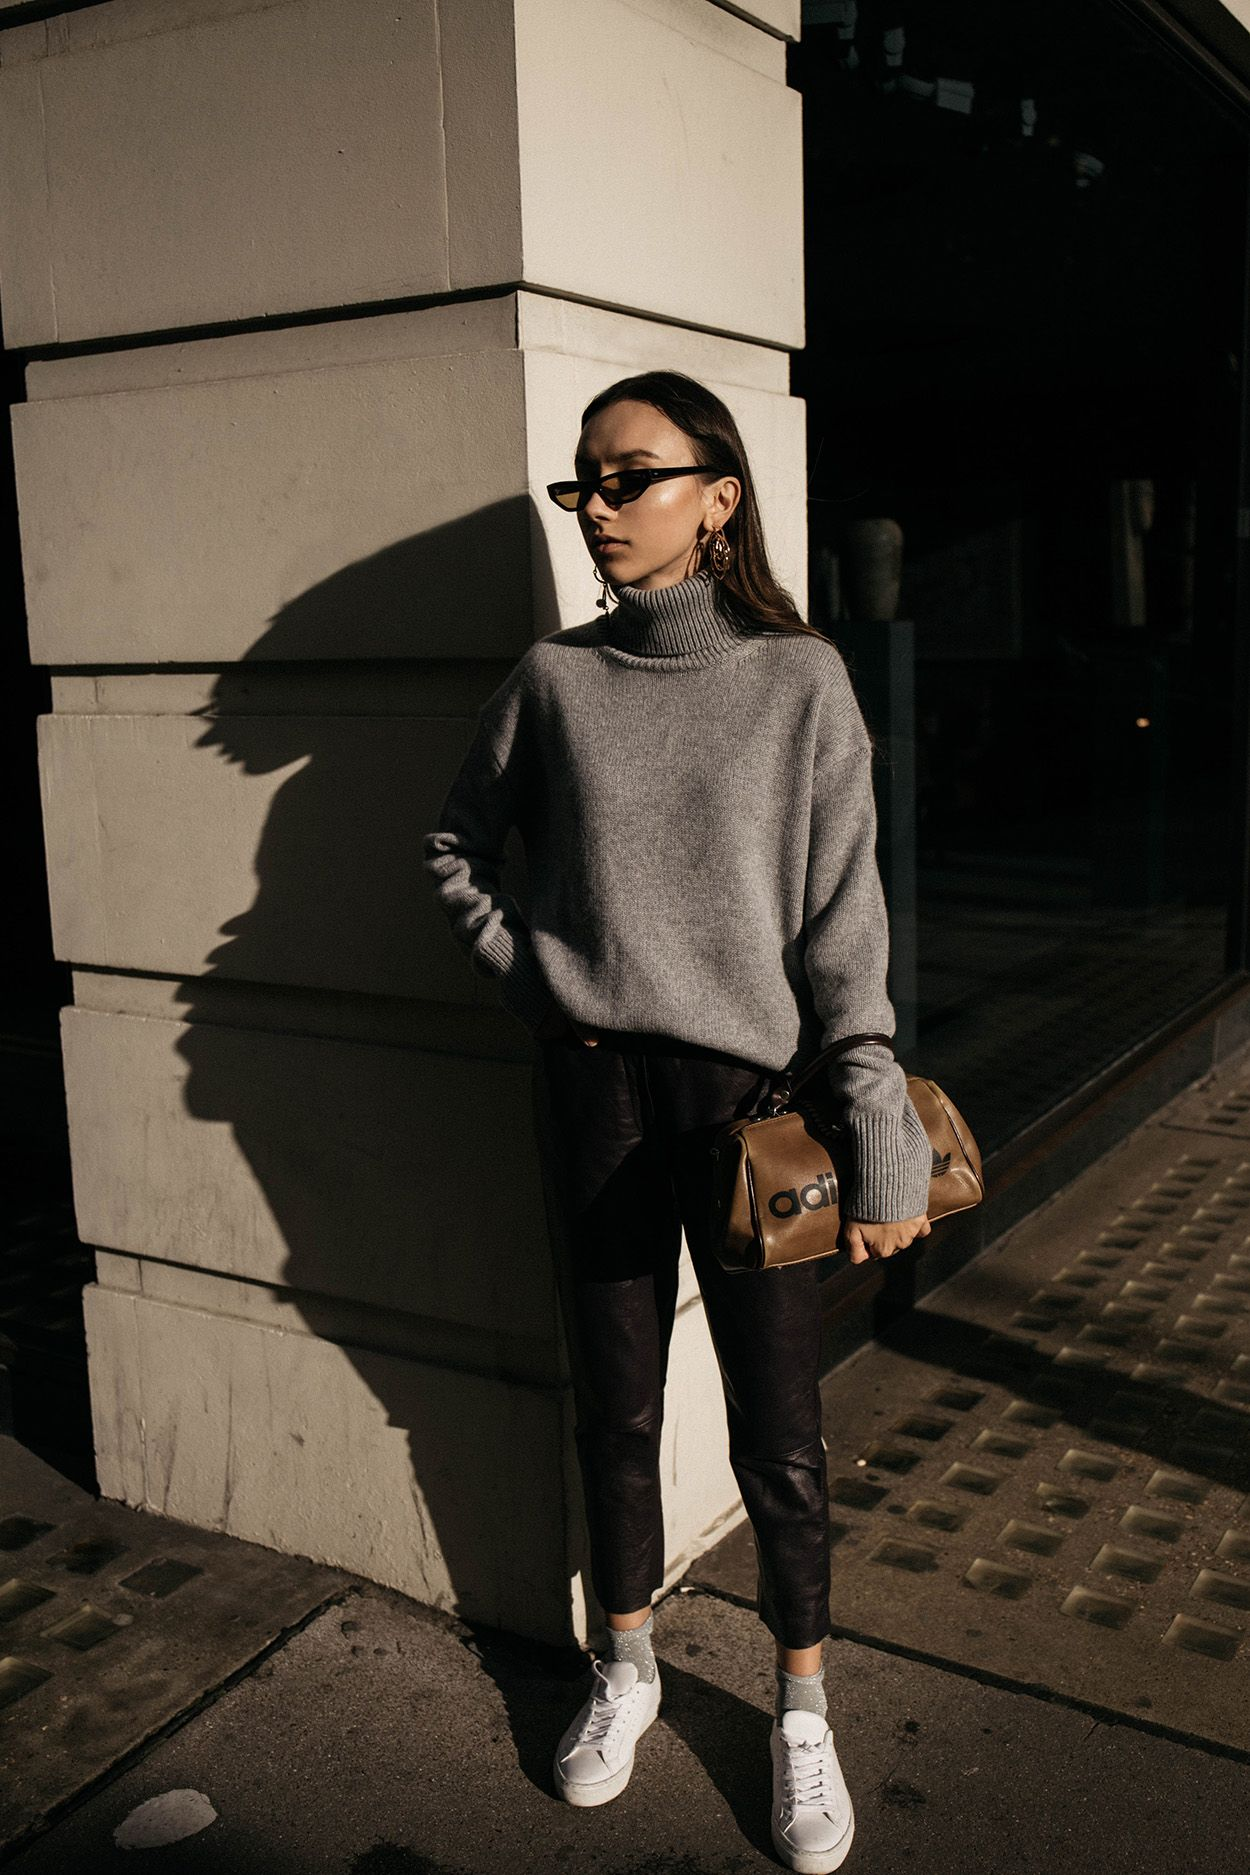 8f5bbfbbab1b How to wear grey cashmere turtleneck sweater with leather trousers Filippa  K sneakers and Matrix sunglasses at London Fashion Week thefashioncuisine  style